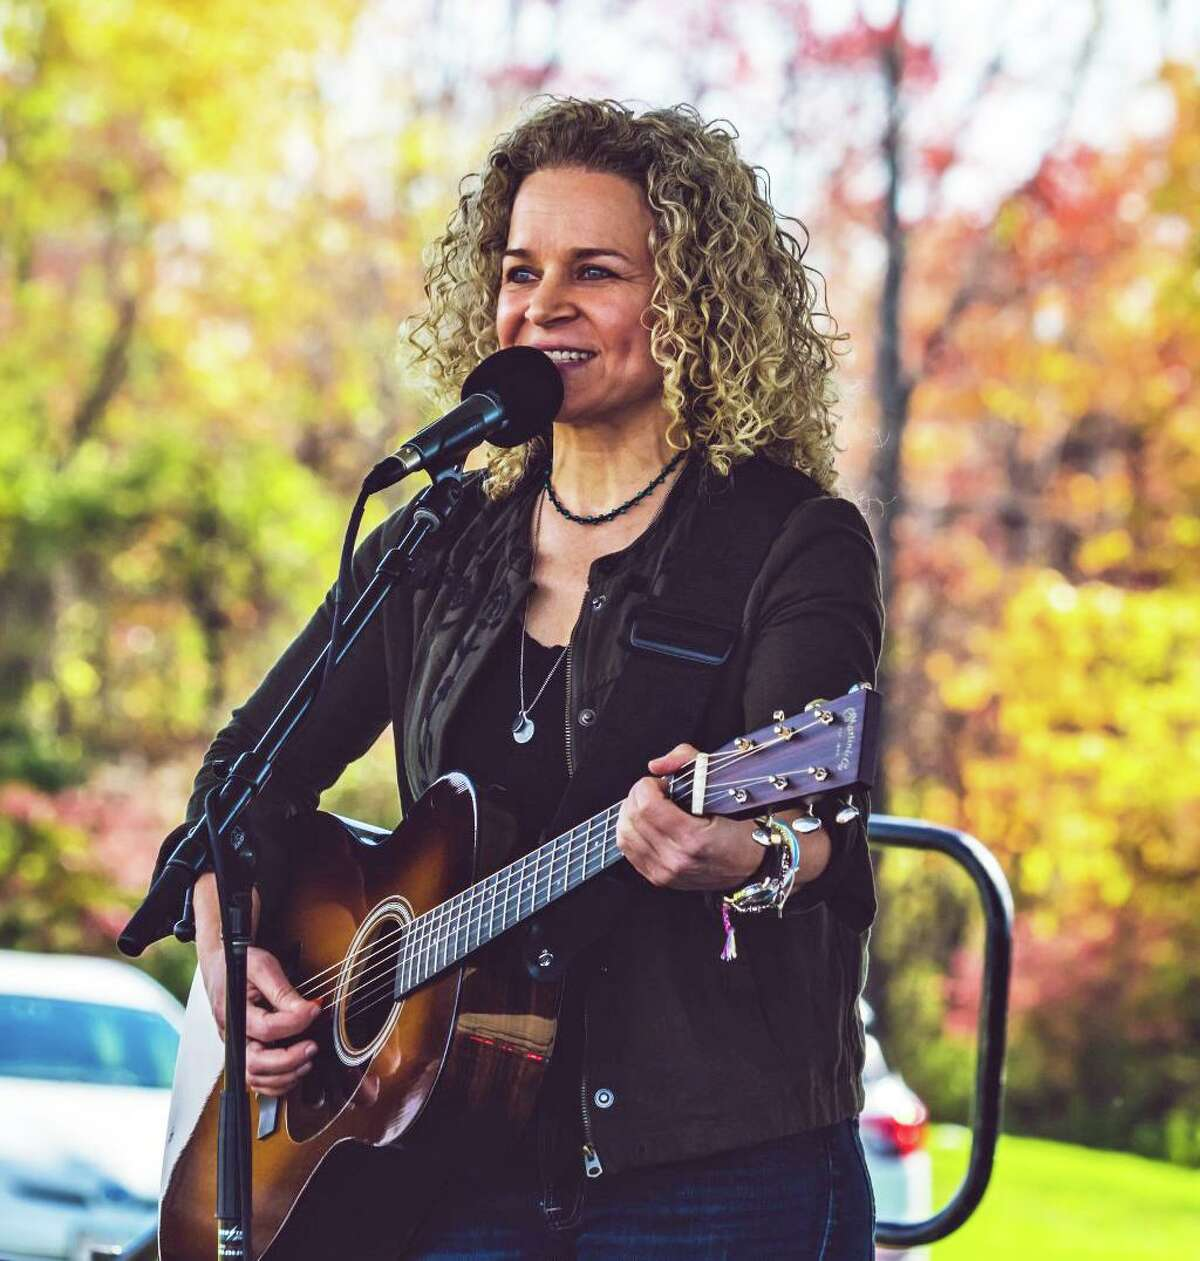 North Guilford musician Lara Herscovitch took part in The Buttonwood Tree of Middletown's 30-Hour 30th anniversary celebration last October.